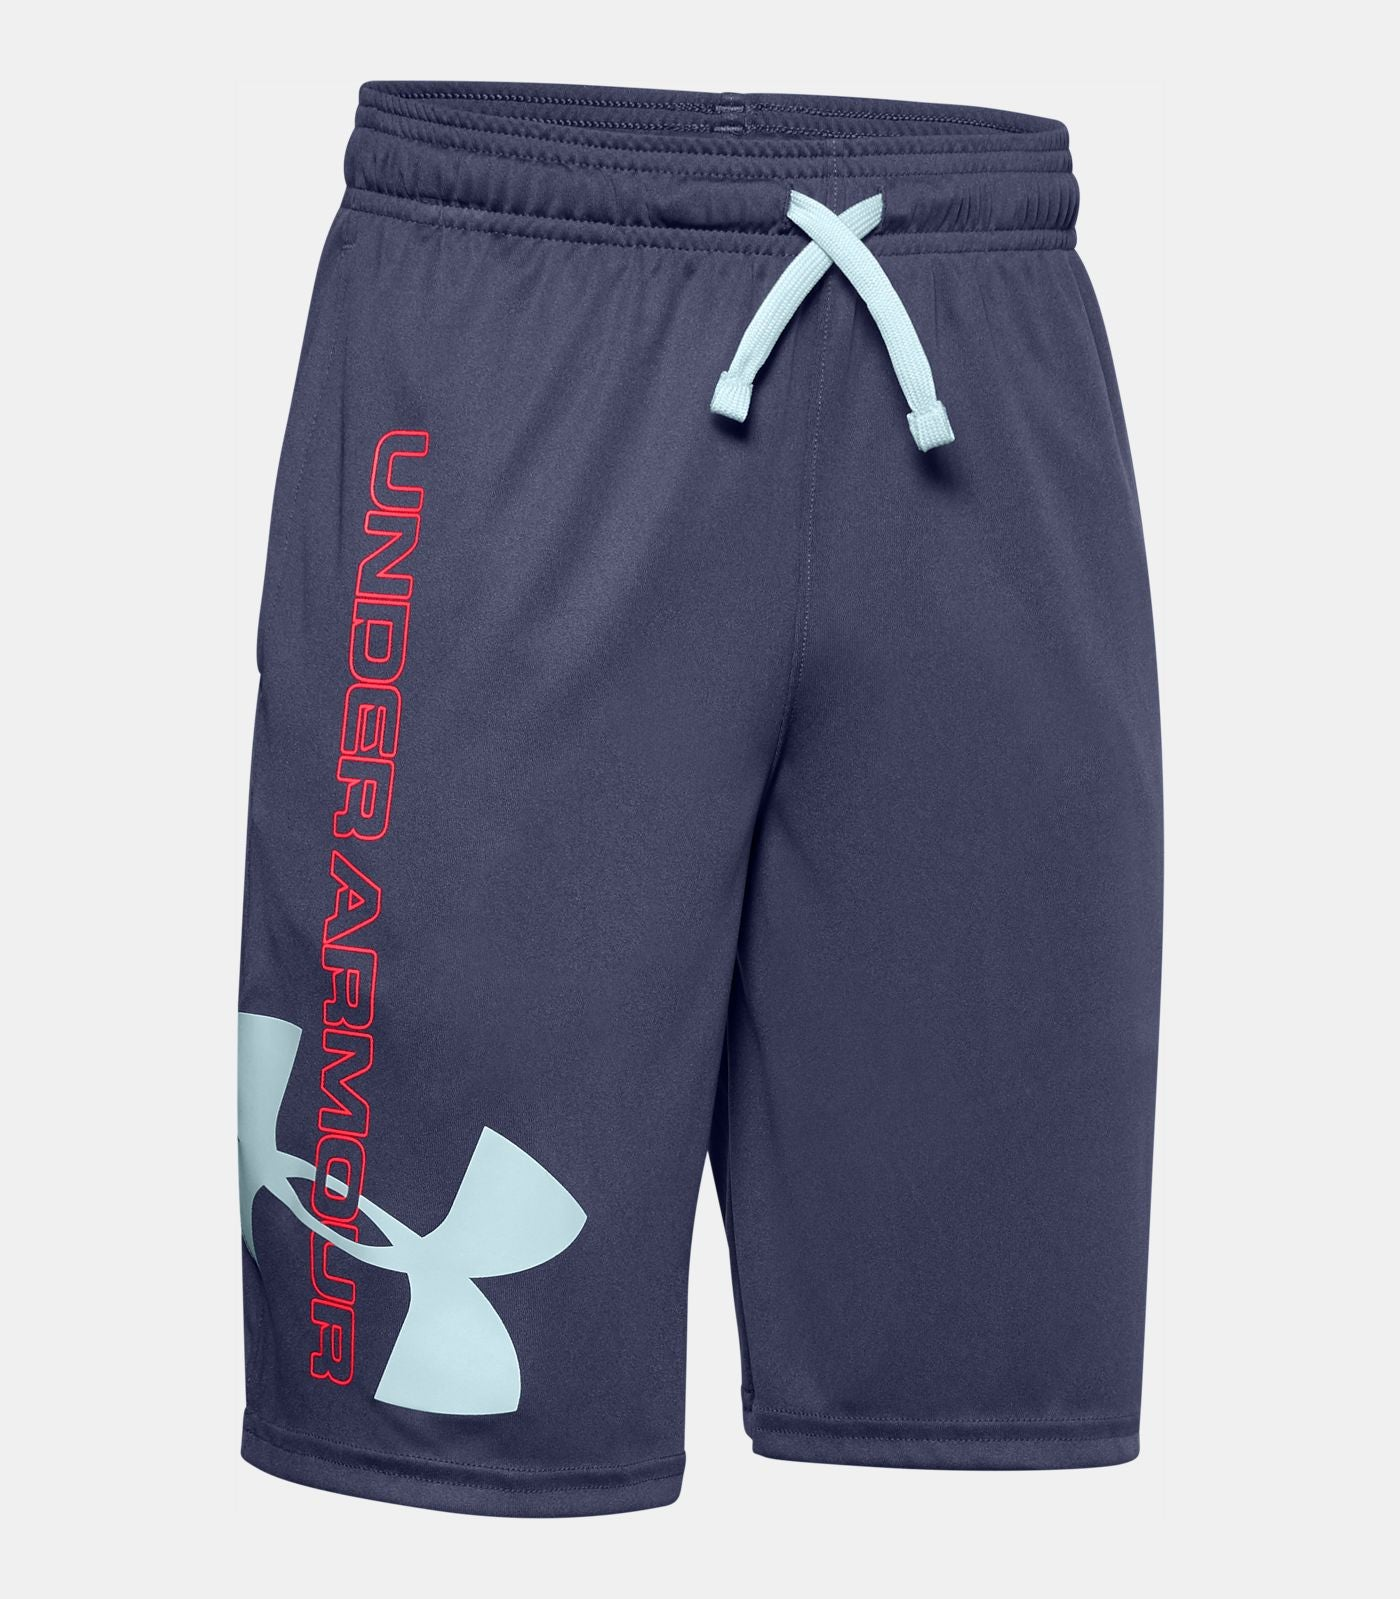 Under Armour Prototype Supersized Boys' Shorts